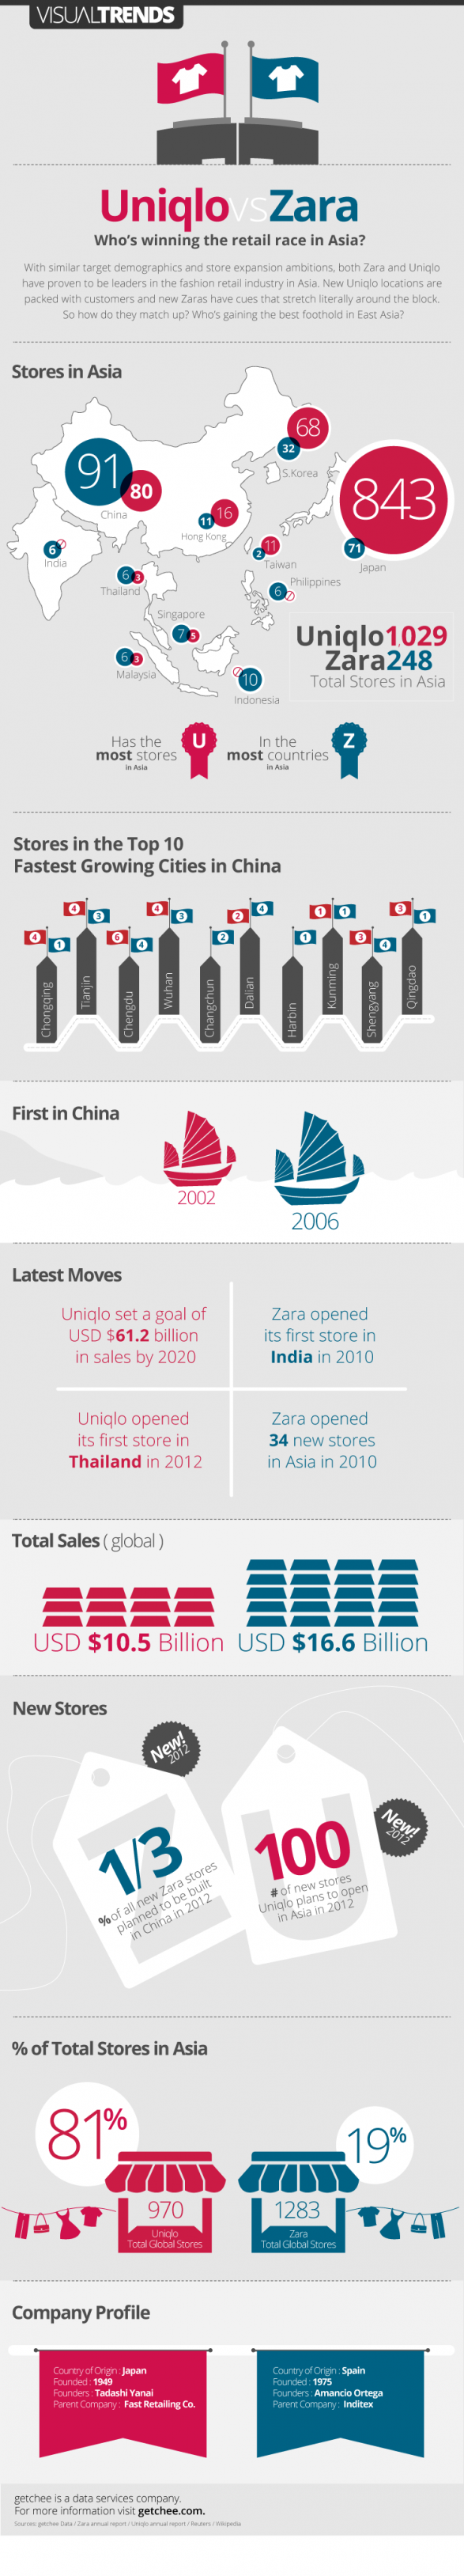 Zara vs. Uniqlo in Asia - who